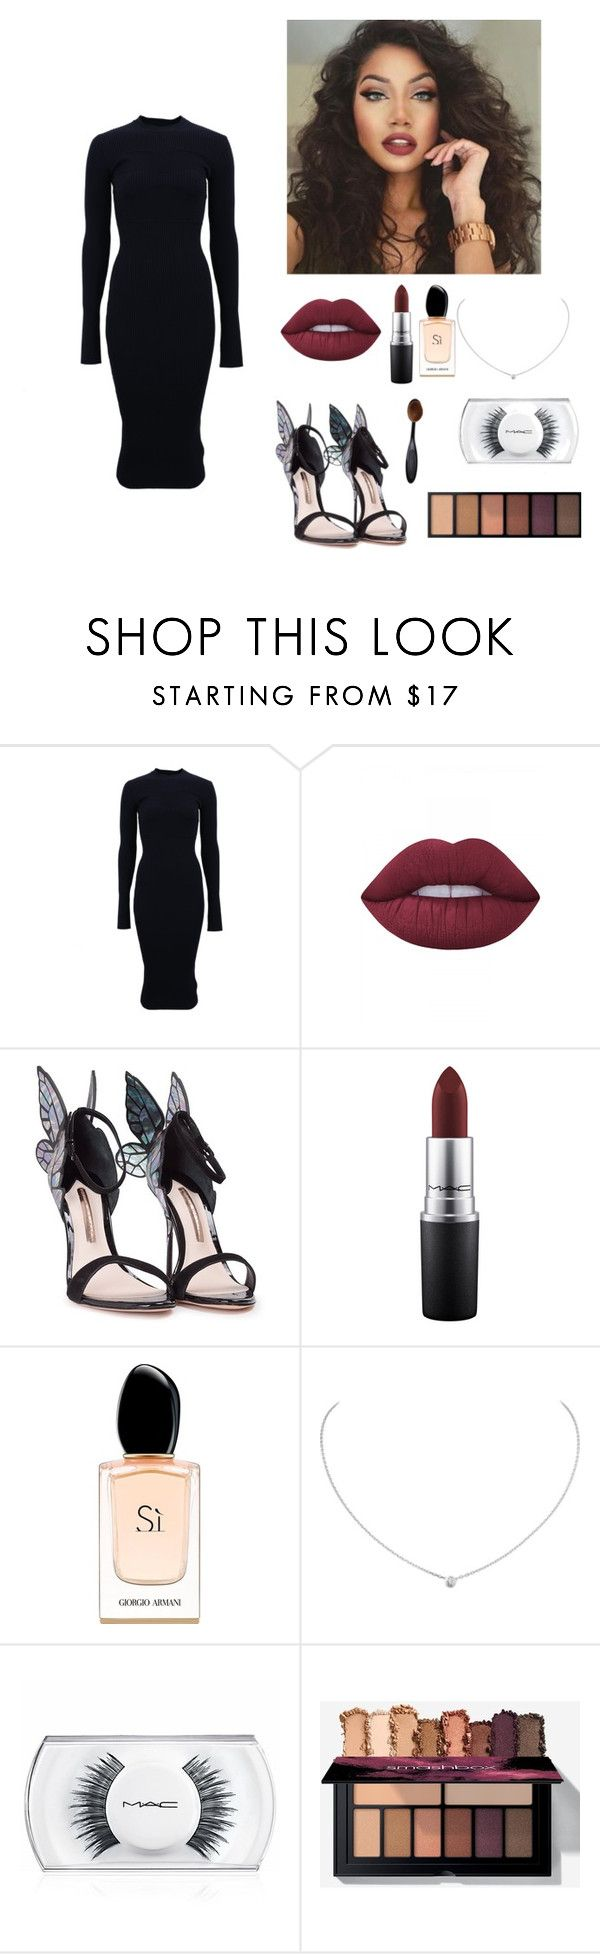 """now youll kiss me.."" by seniora ❤ liked on Polyvore featuring Victoria Beckham, Lime Crime, Sophia Webster, MAC Cosmetics, Giorgio Armani and Cartier"